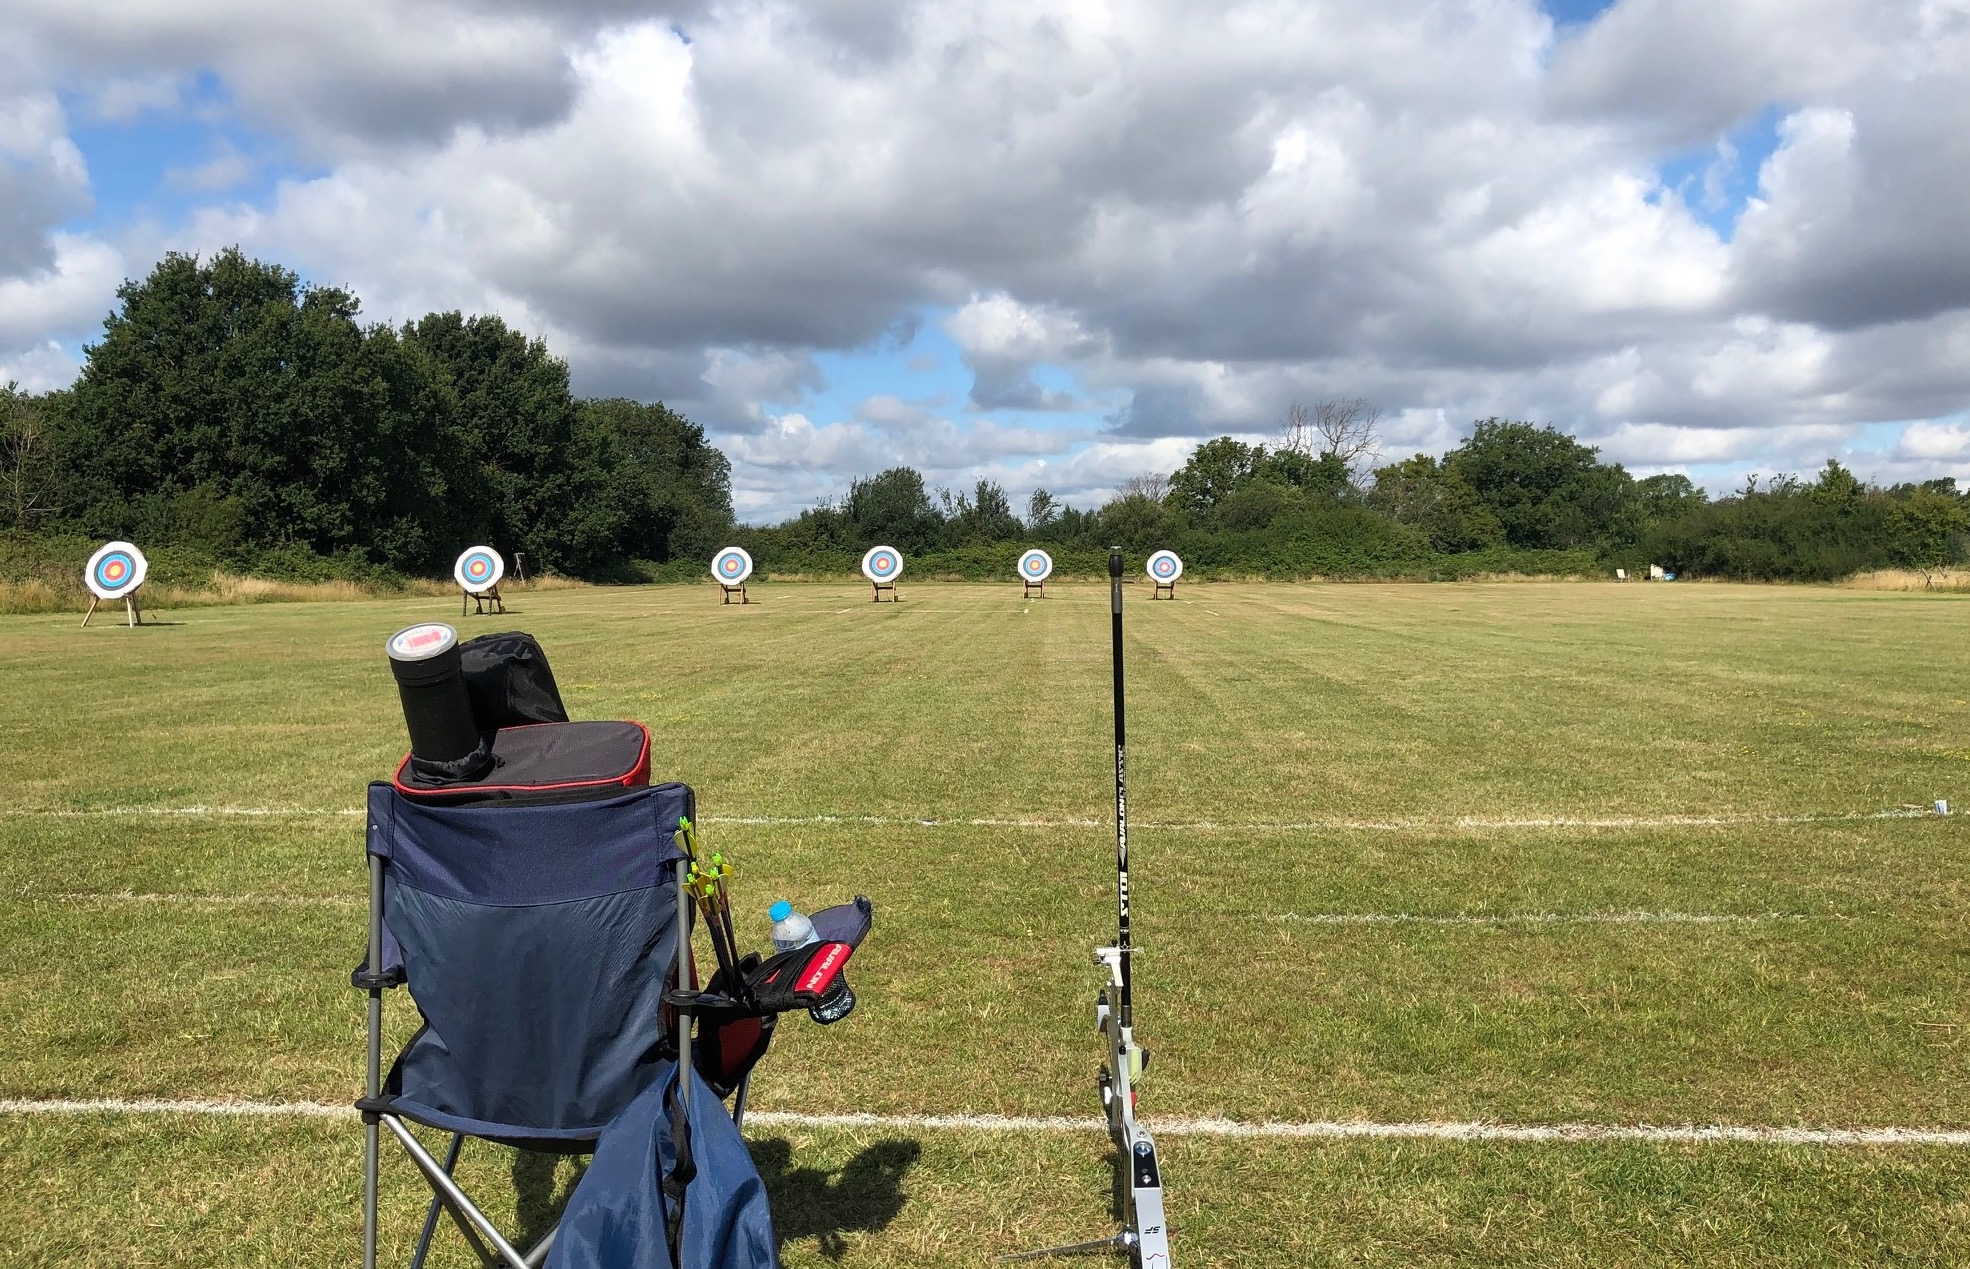 We're welcoming many archers from local clubs